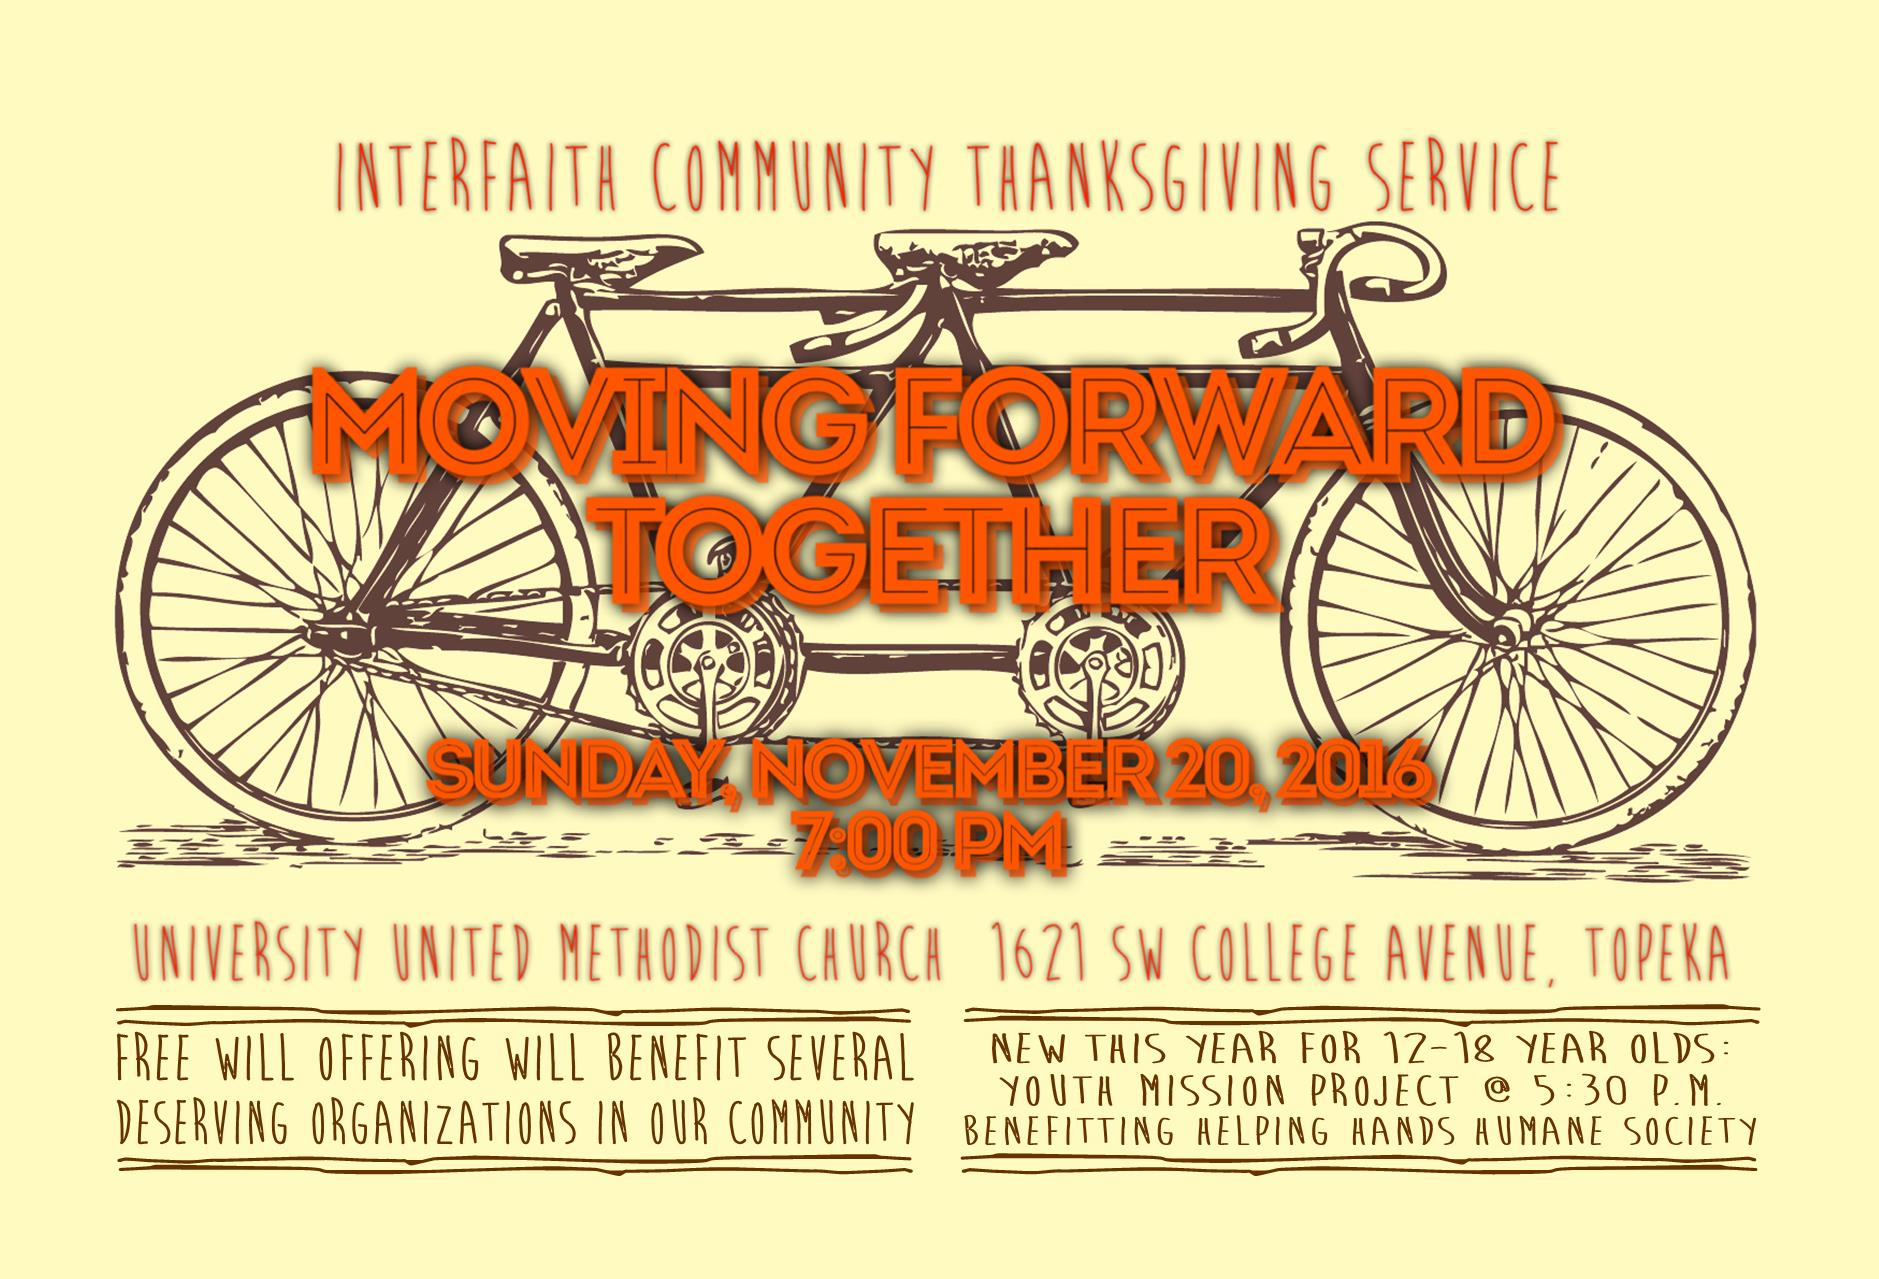 Interfaith Thanksgiving Service Poster